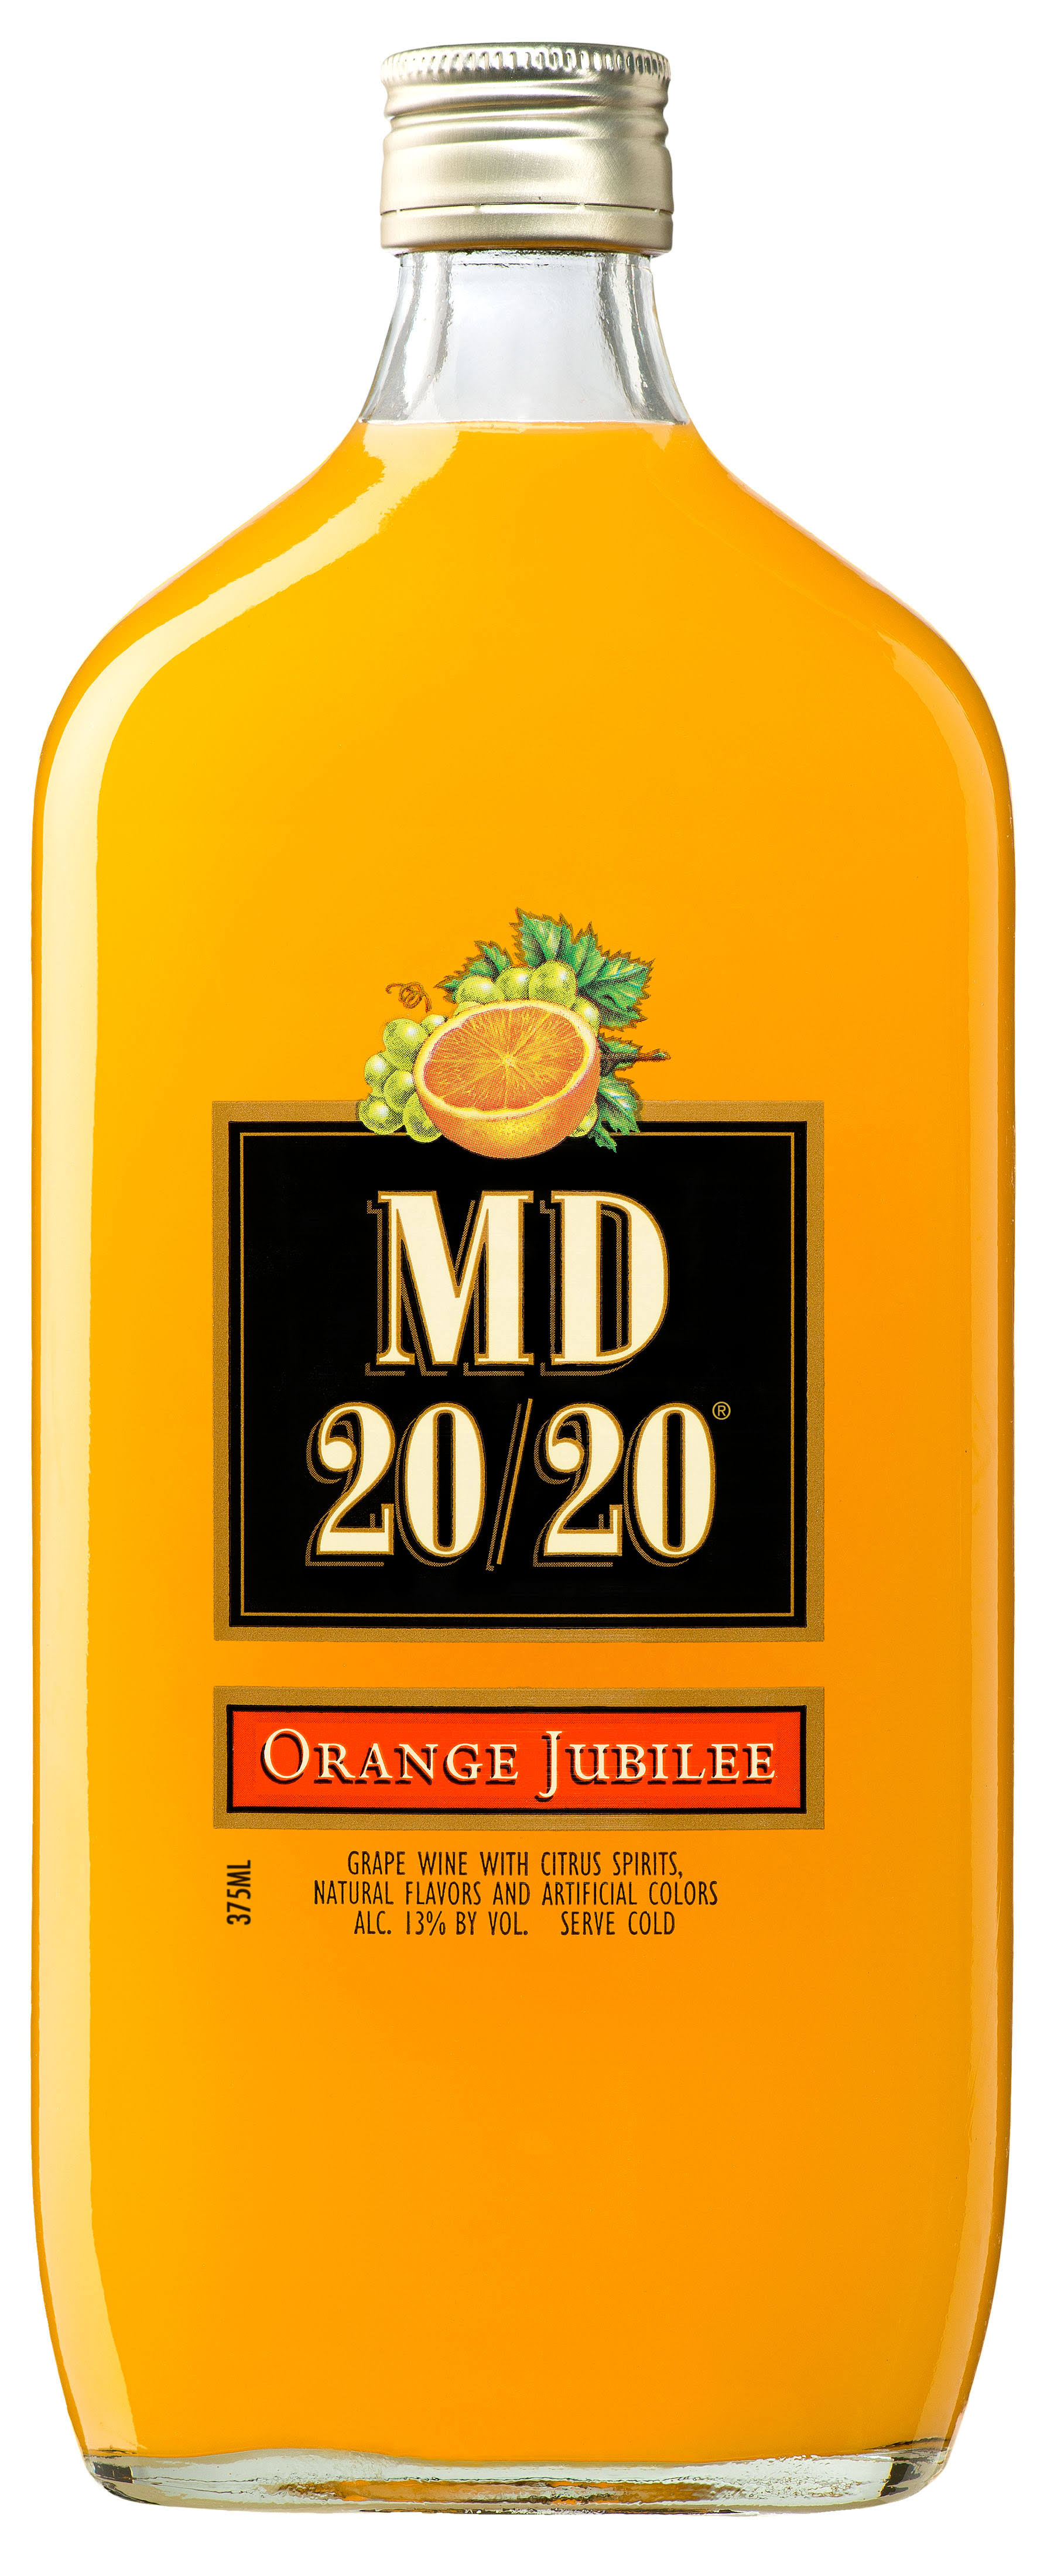 MD 20/20 Orange Jubillee Flavored Wine - 375ml